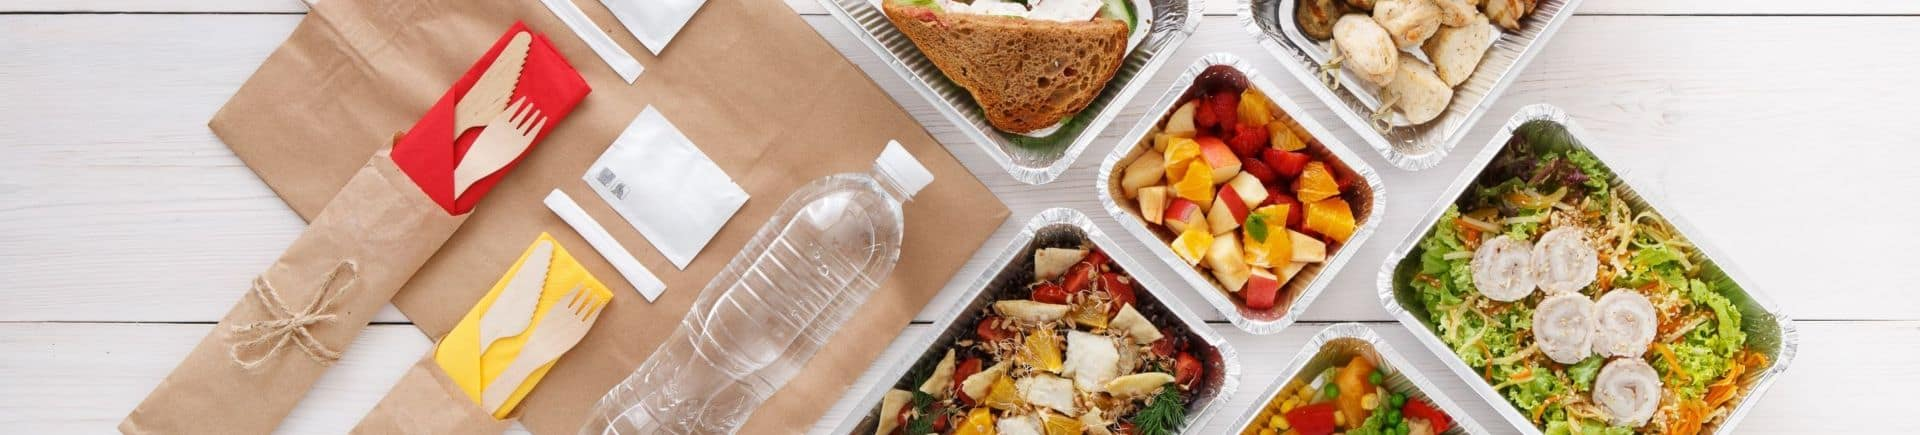 Printing Ink and Food Packaging in India